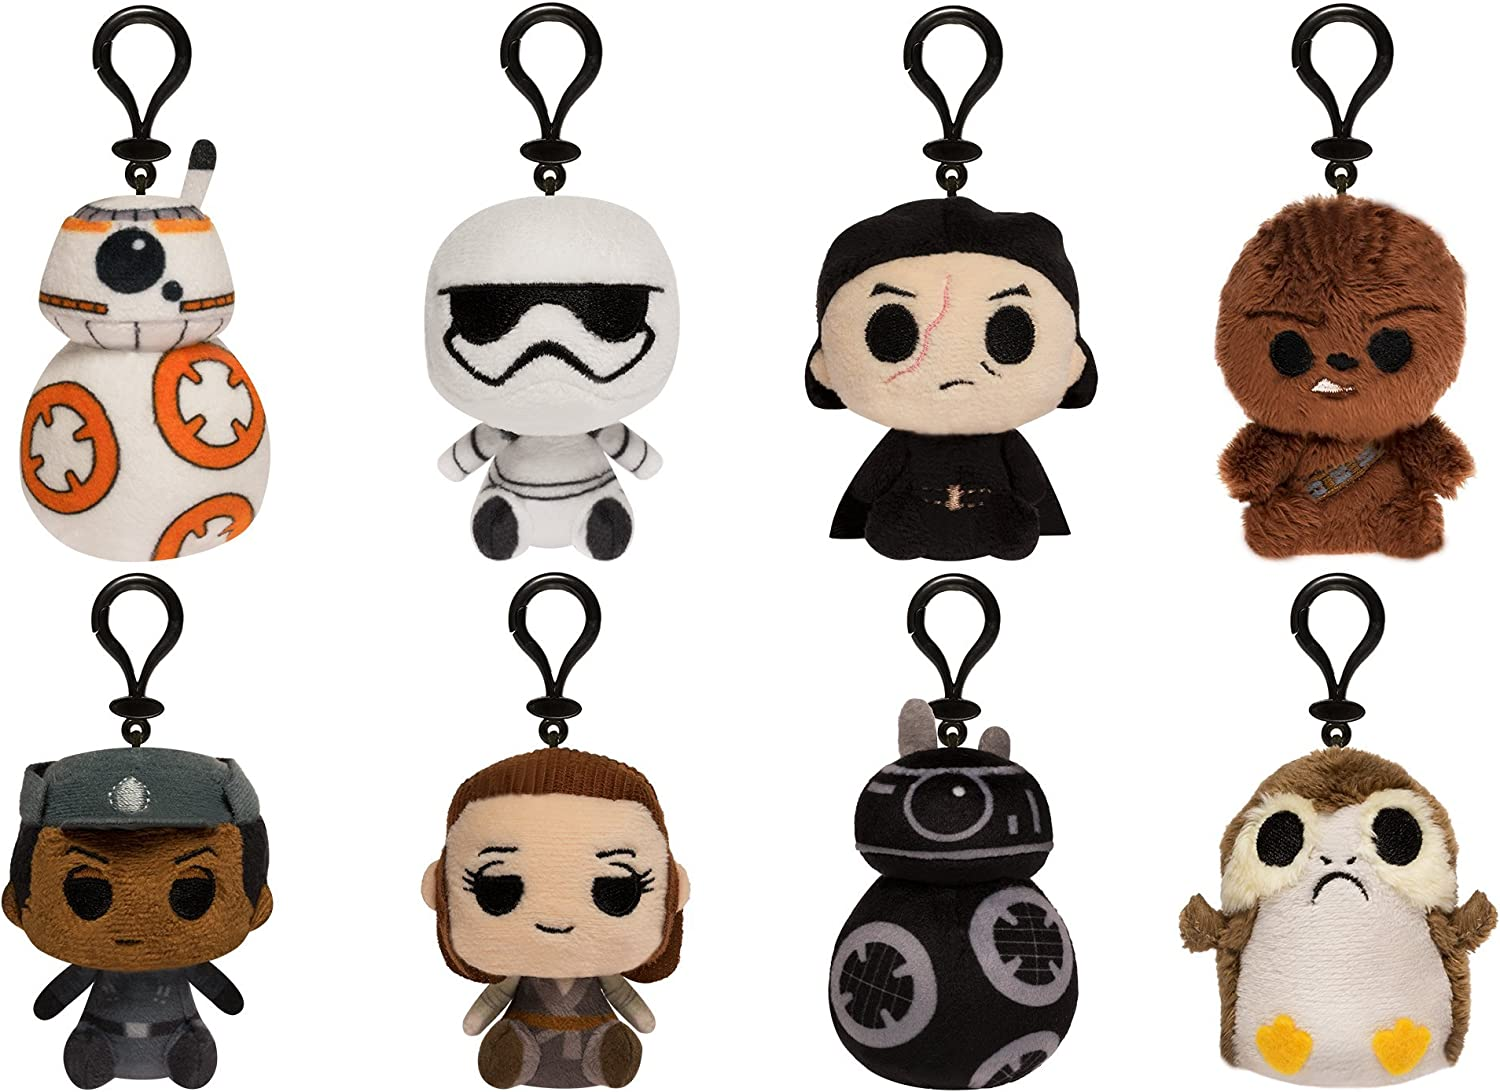 Funko Blind Bag Keychain Plush  Star Wars The Last Jedi  one Mystery Figure